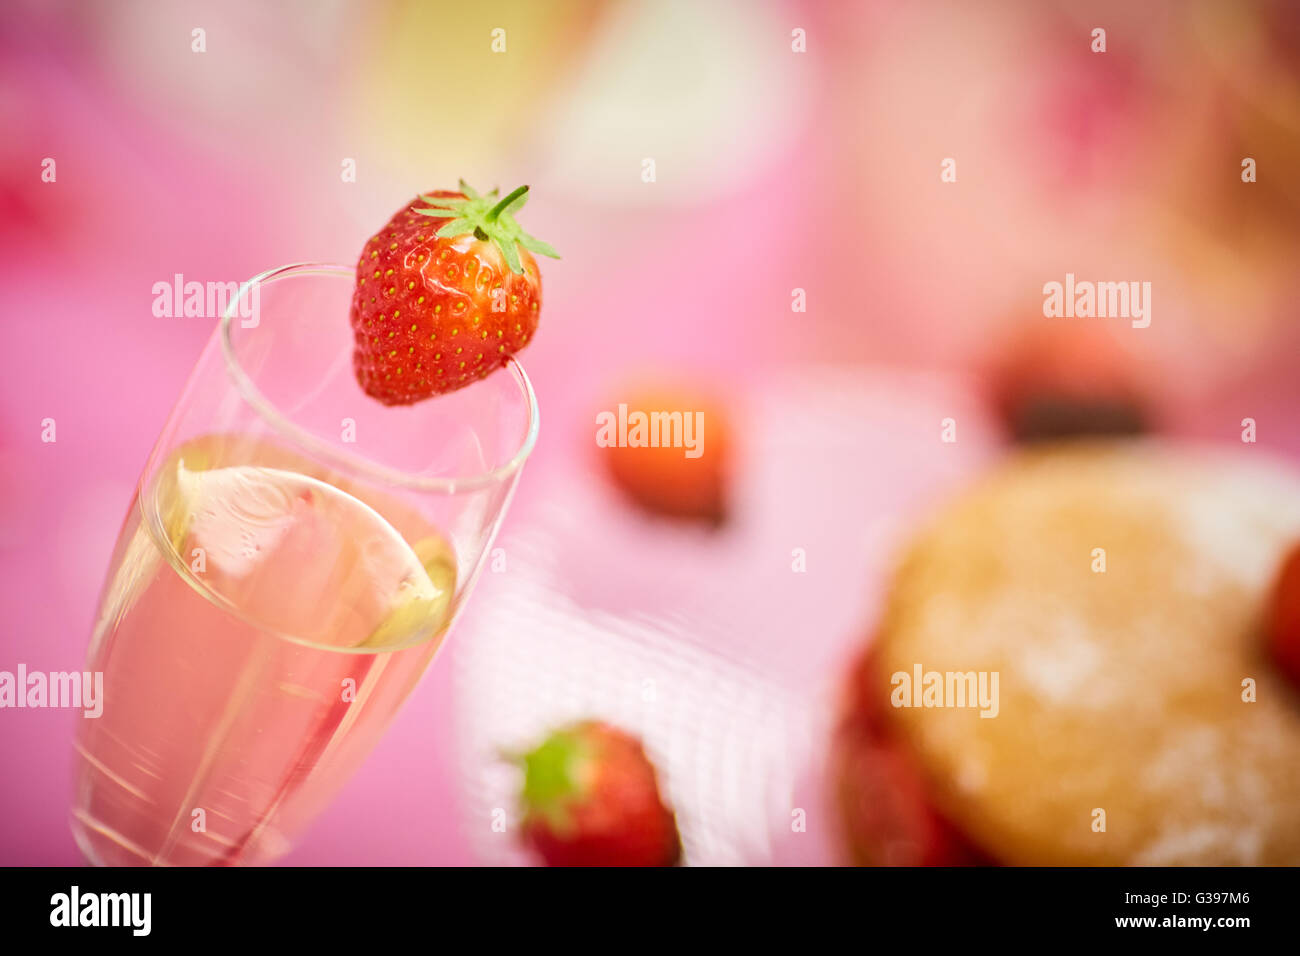 Strawberry wine cake chocolate dipped  Afternoon tea party picnic summer fruit red pink sponge glass decoration - Stock Image